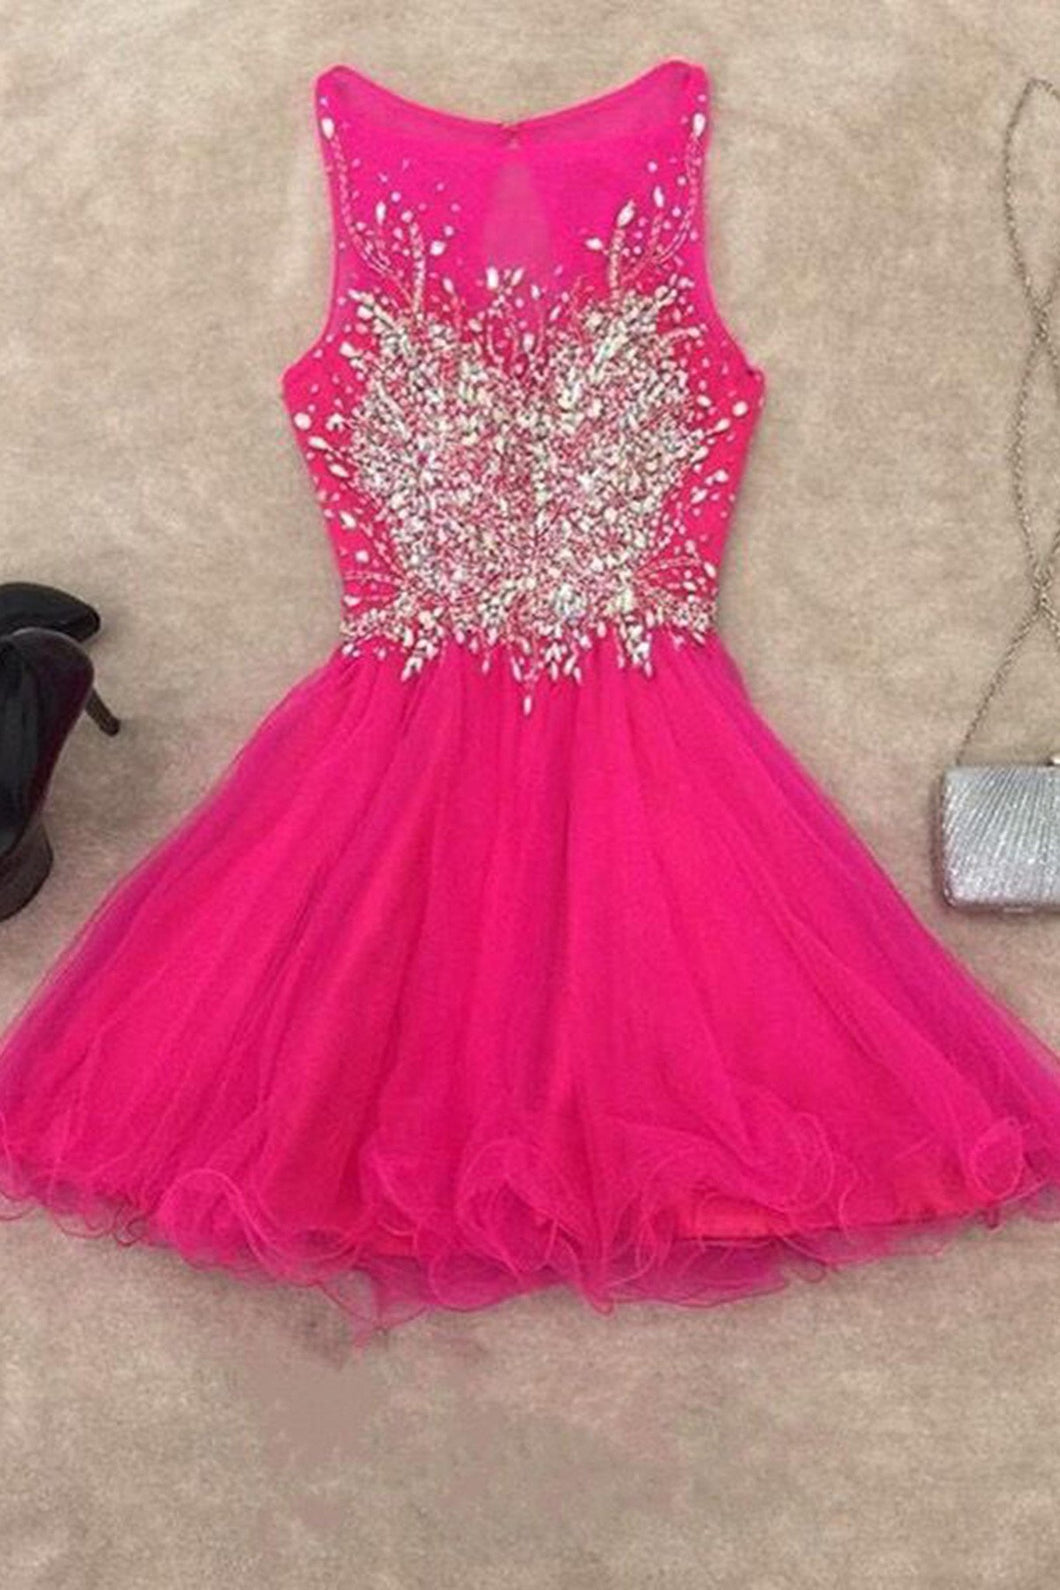 2018 evening gowns - Hot pink organza round neck rhinestone A-line short dress,cute dress